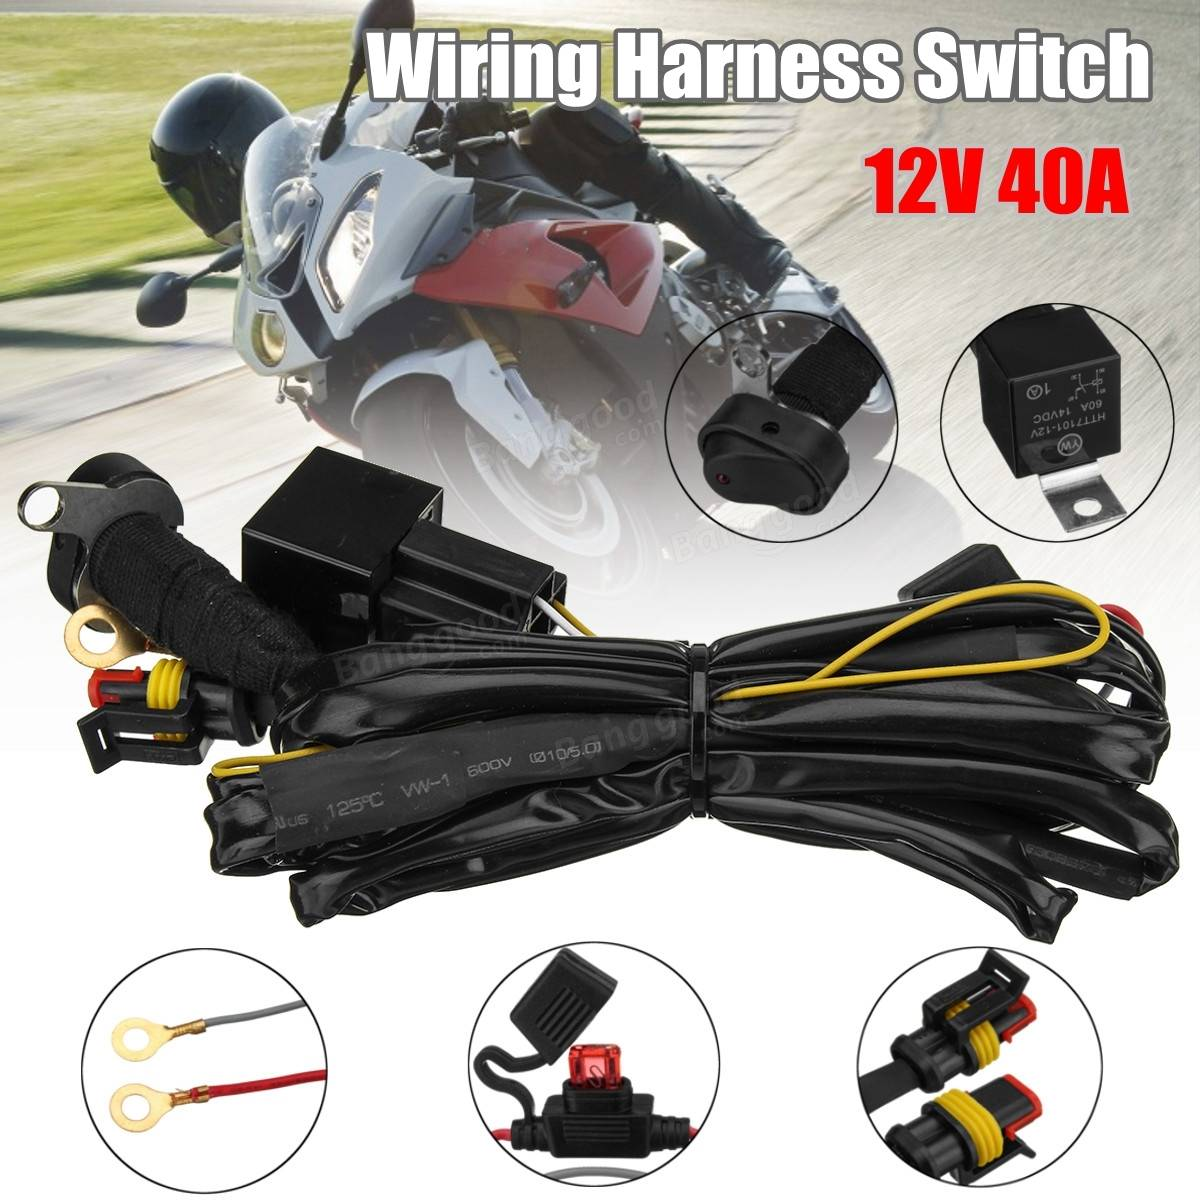 12v 40a Led Fog Lights Wiring Harness Switch On Off For Bmw R1200gs Light F800gs Adv